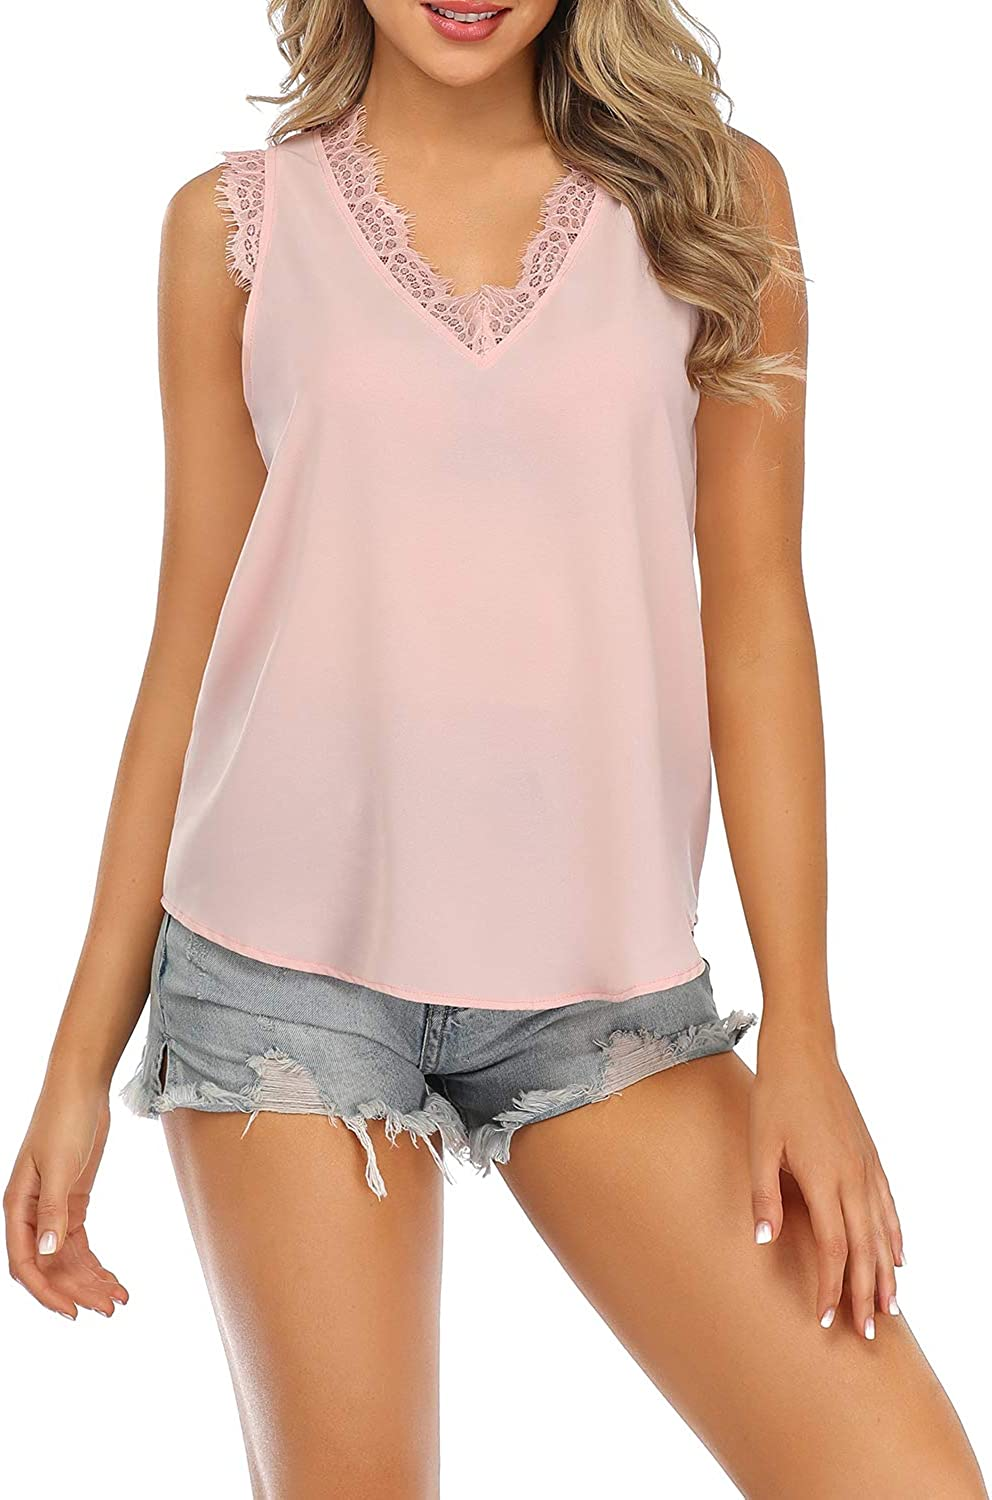 Derssity Tank Tops for Womens Casual Lace Sleeveless Summer Tops V-Neck T-Shirts Tunic Blouse